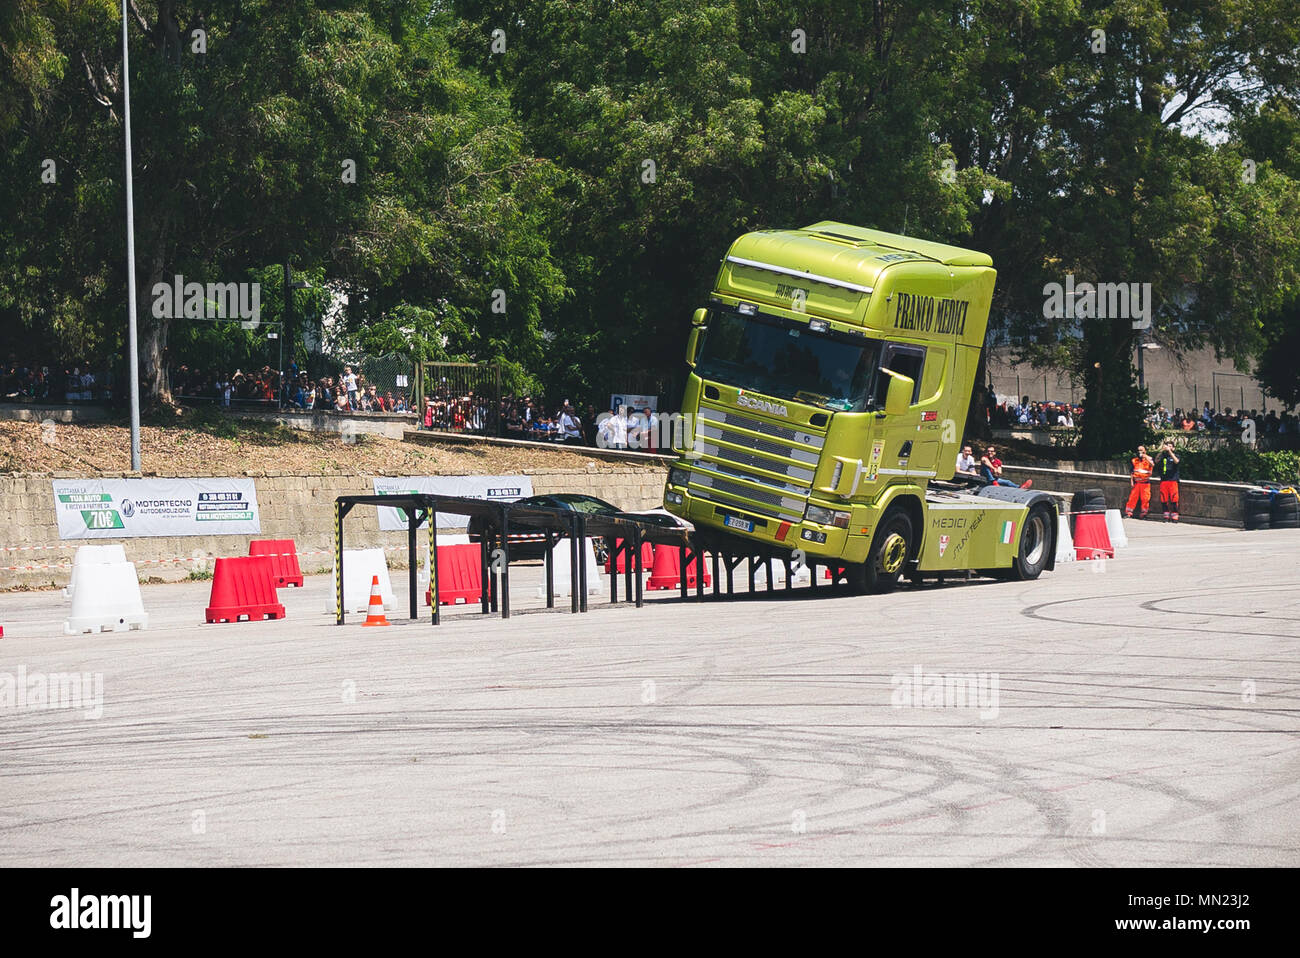 Stuntman of the Franco Medici team they perform on a Scania truck during the Motor Experience, Naples International Auto and Motorcycle exhibition. - Stock Image